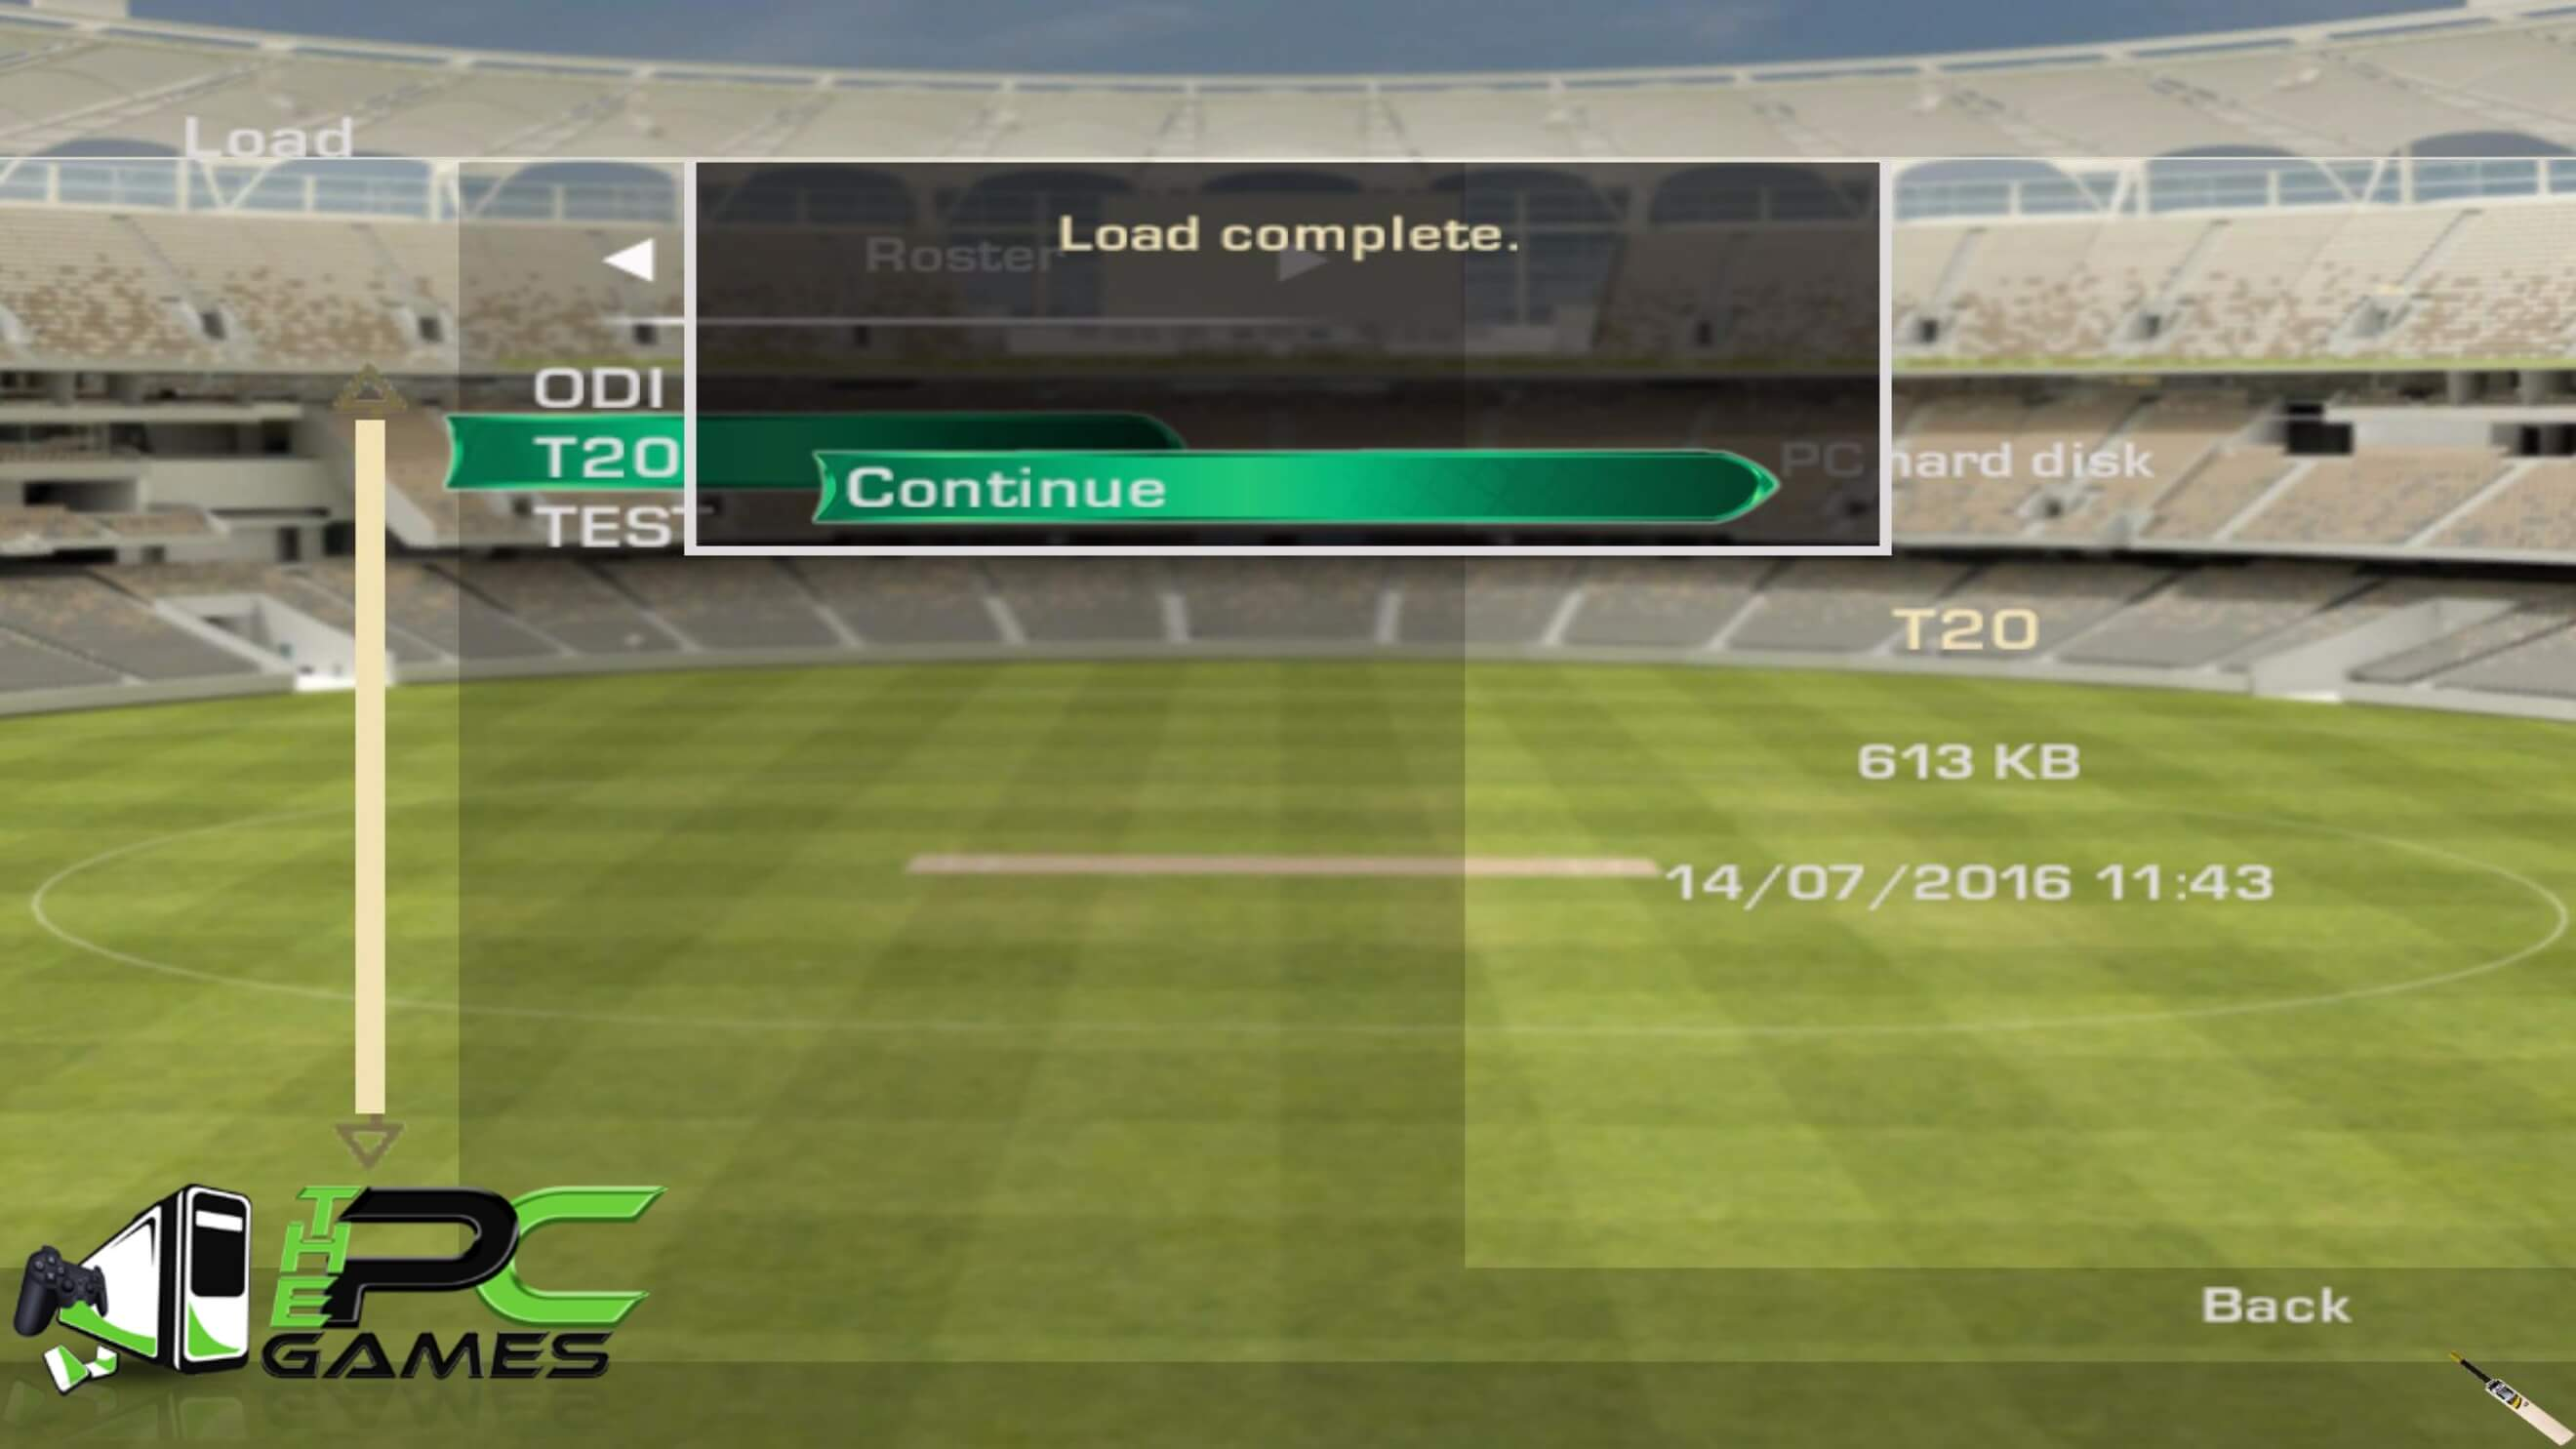 How to Load Roster (T20-ODI-Test) Tutorial (6)